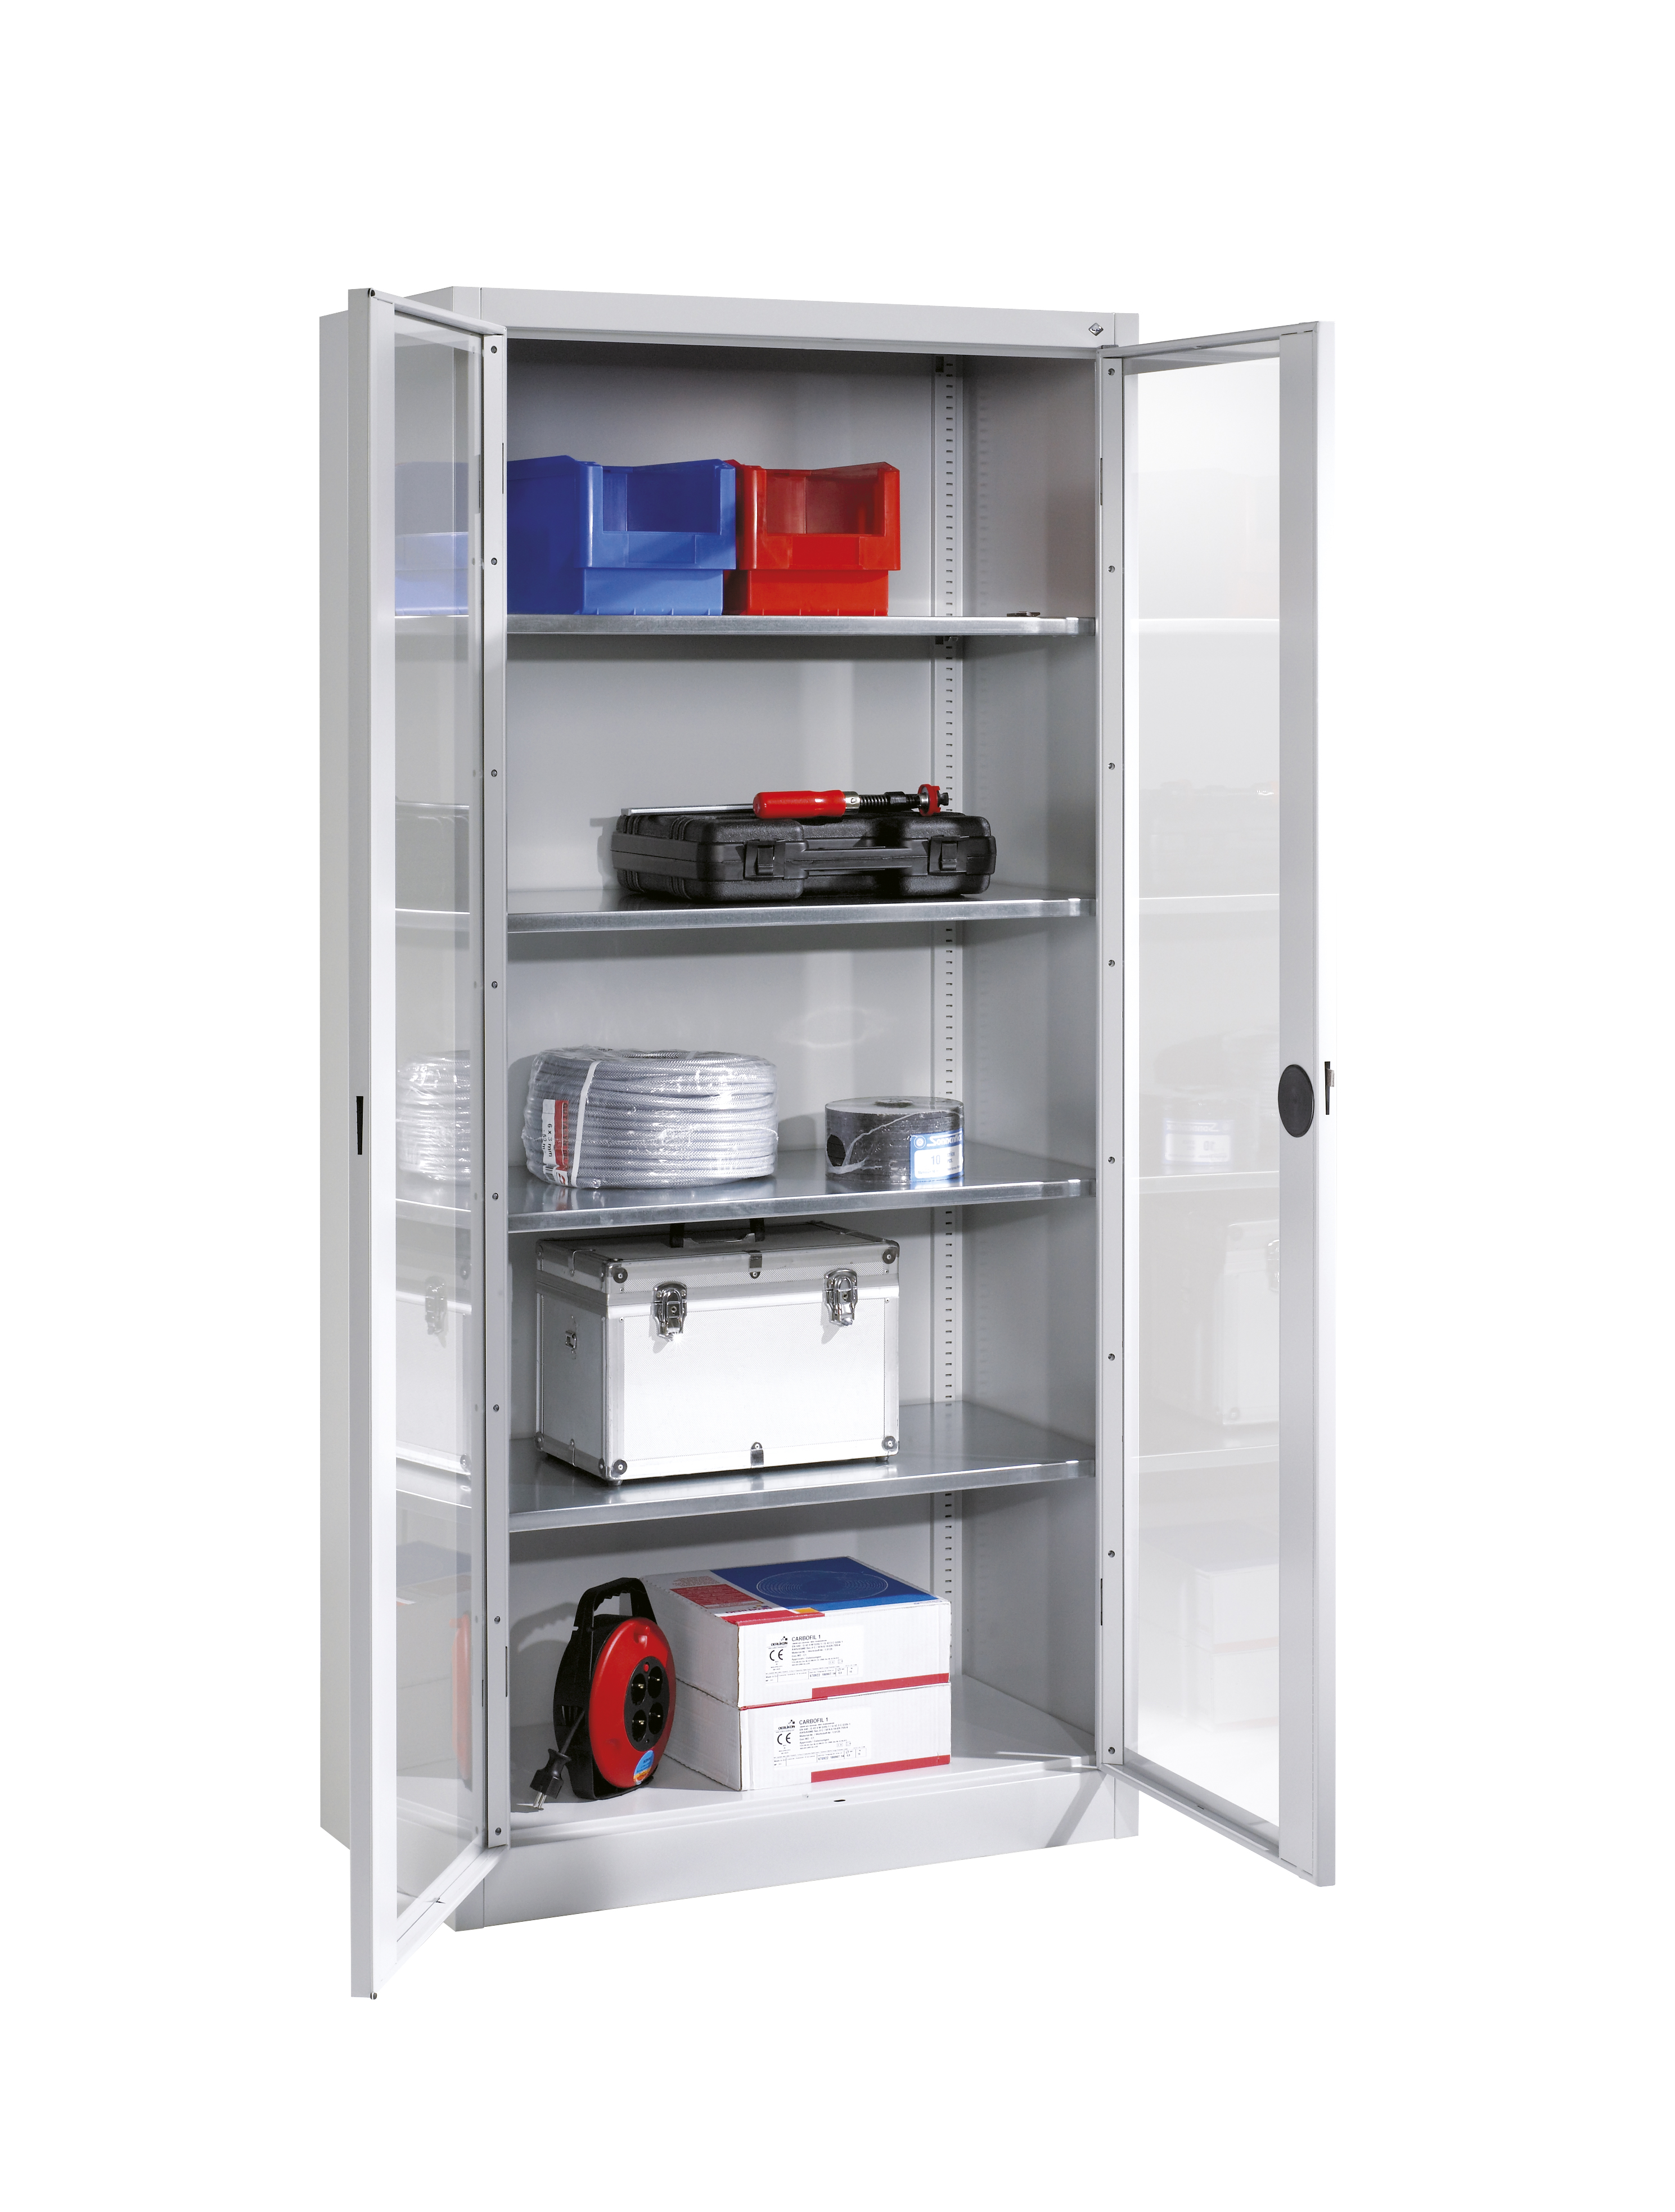 Tool and material cabinets with vision panels in doors